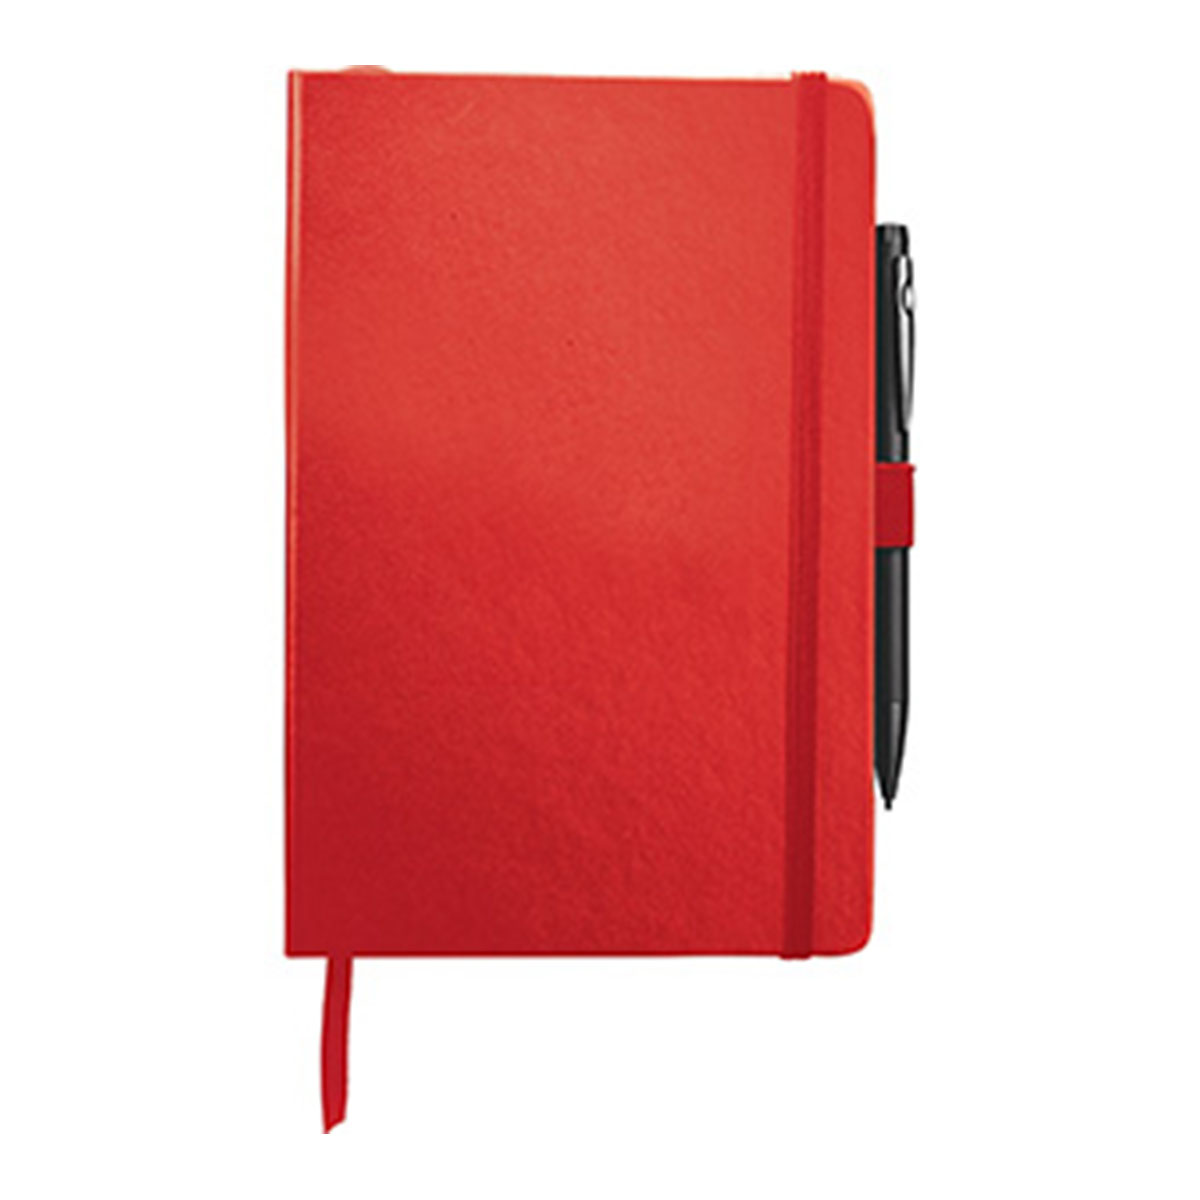 Nova Bound JournalBook-Red